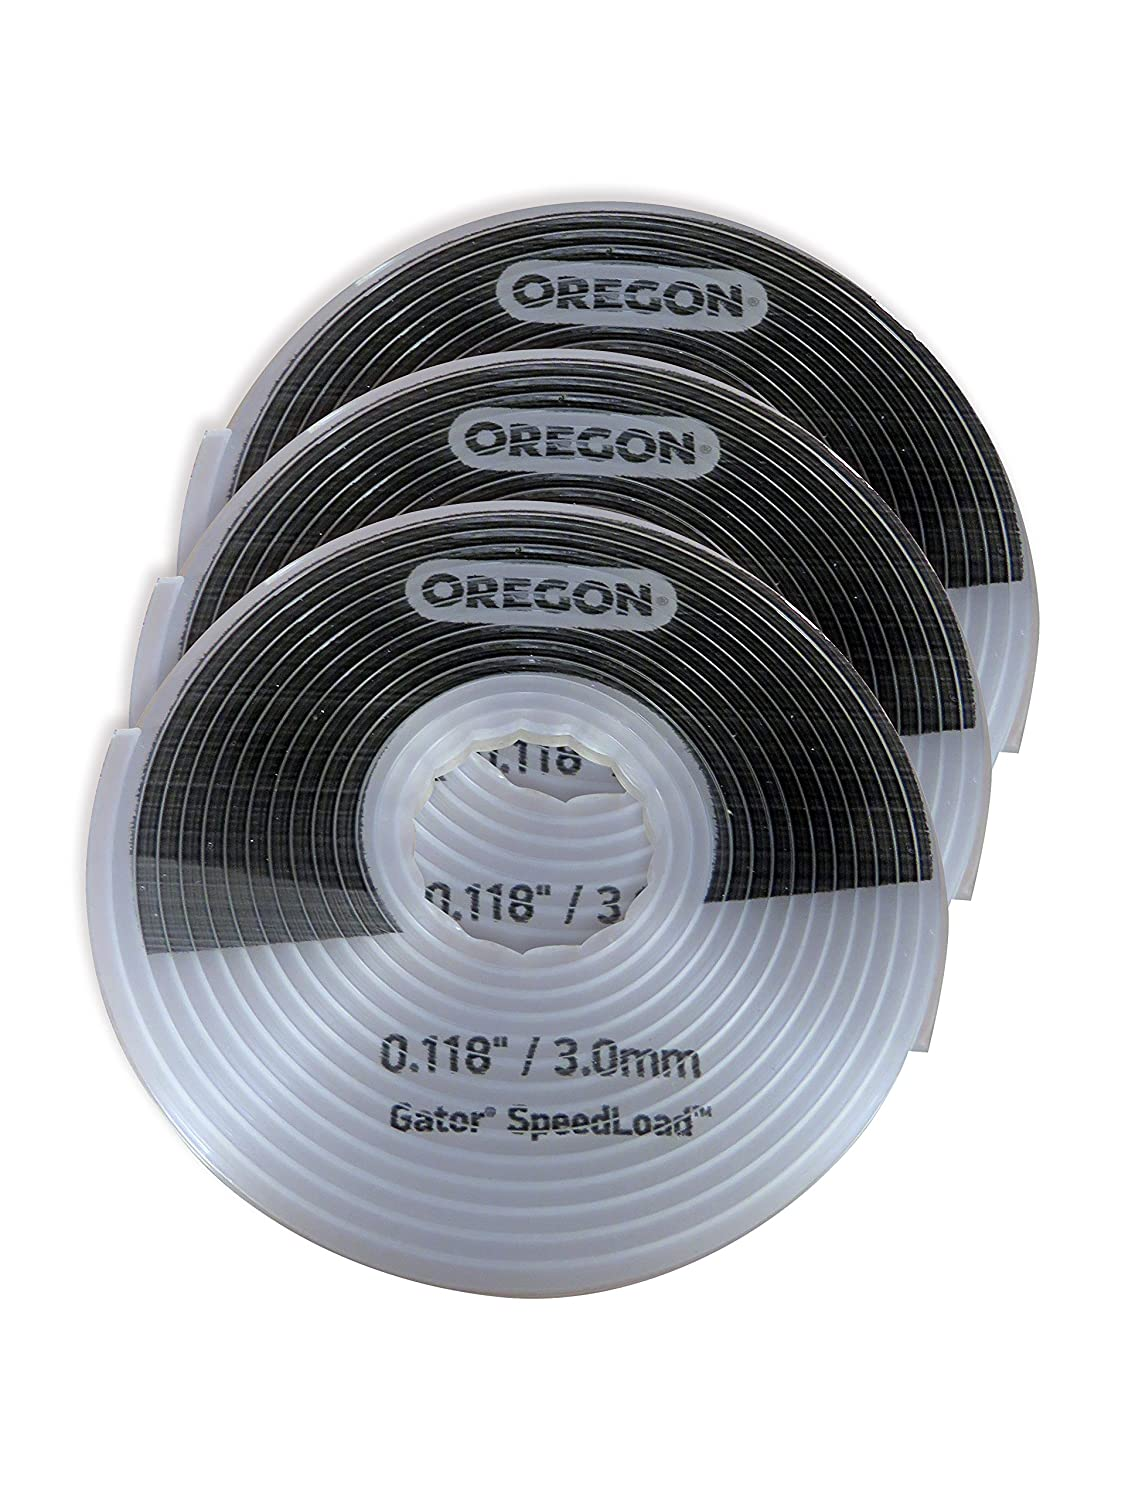 518 03/ 3.0/ mm x 5.52/ m Grande Gator Speedload Coupe-bordures de remplacement de disque 24-518-10 Oregon 24 blanc